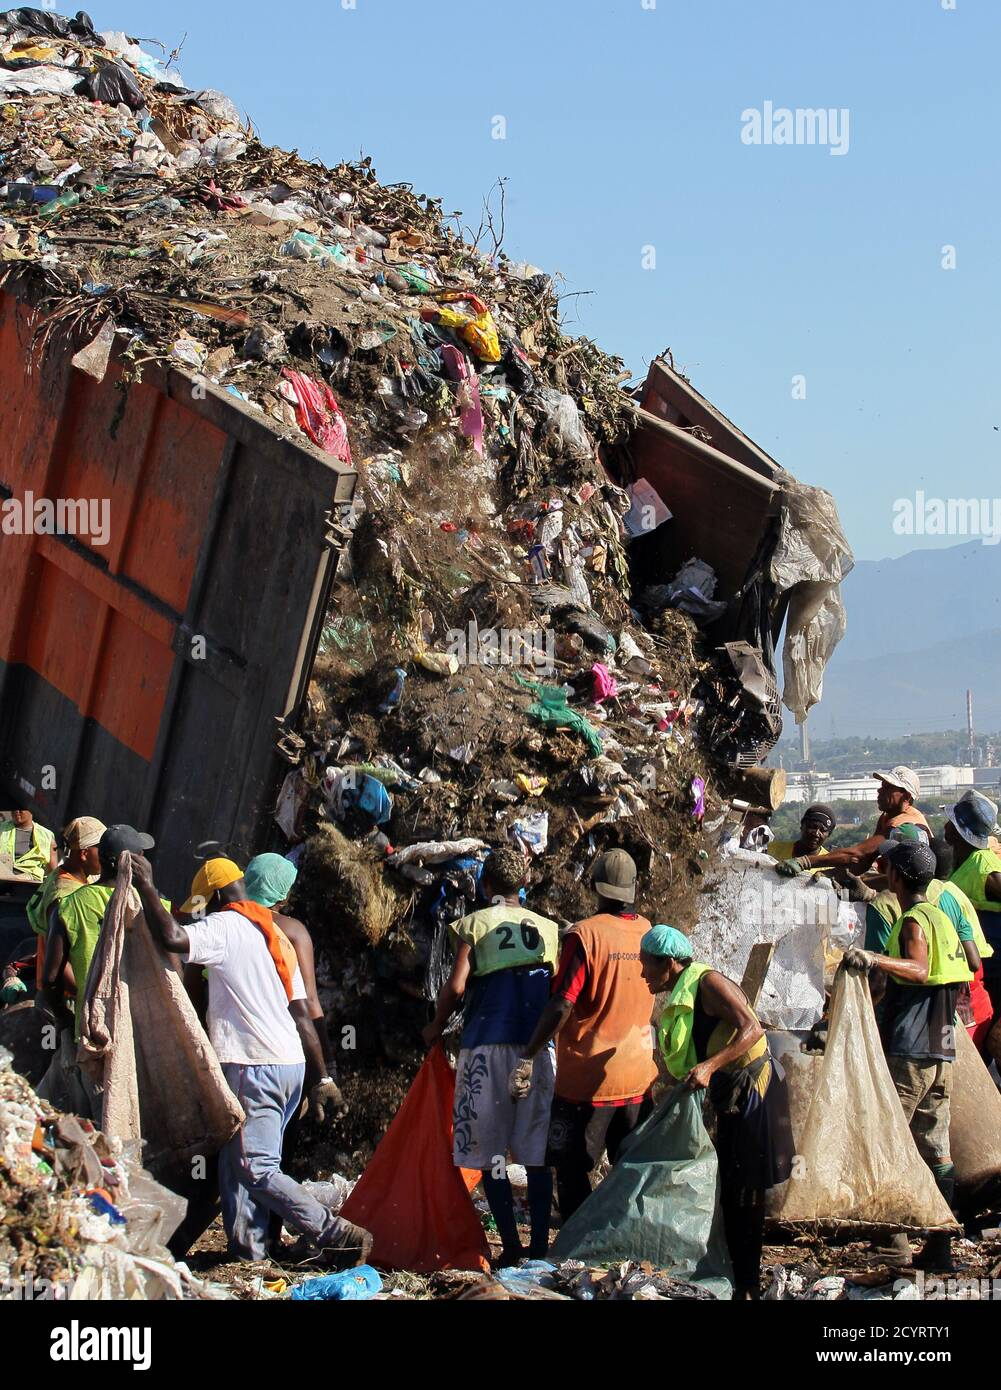 """People collect recyclable materials from Jardim Gramacho landfill, where the documentary Waste Land or """"Lixo Extraordinario"""" was filmed, in Rio de Janeiro January 28, 2011. Waste Land follows artist Vik Muniz on a journey from his home in Brooklyn to his native Brazil, where he met a band of garbage pickers in the world's largest garbage dump, Jardim Gramacho. Waste Land has been nominated for an Oscar for Best Documentary.  REUTERS/Sergio Moraes (BRAZIL - Tags: ENVIRONMENT SOCIETY IMAGES OF THE DAY) Stock Photo"""